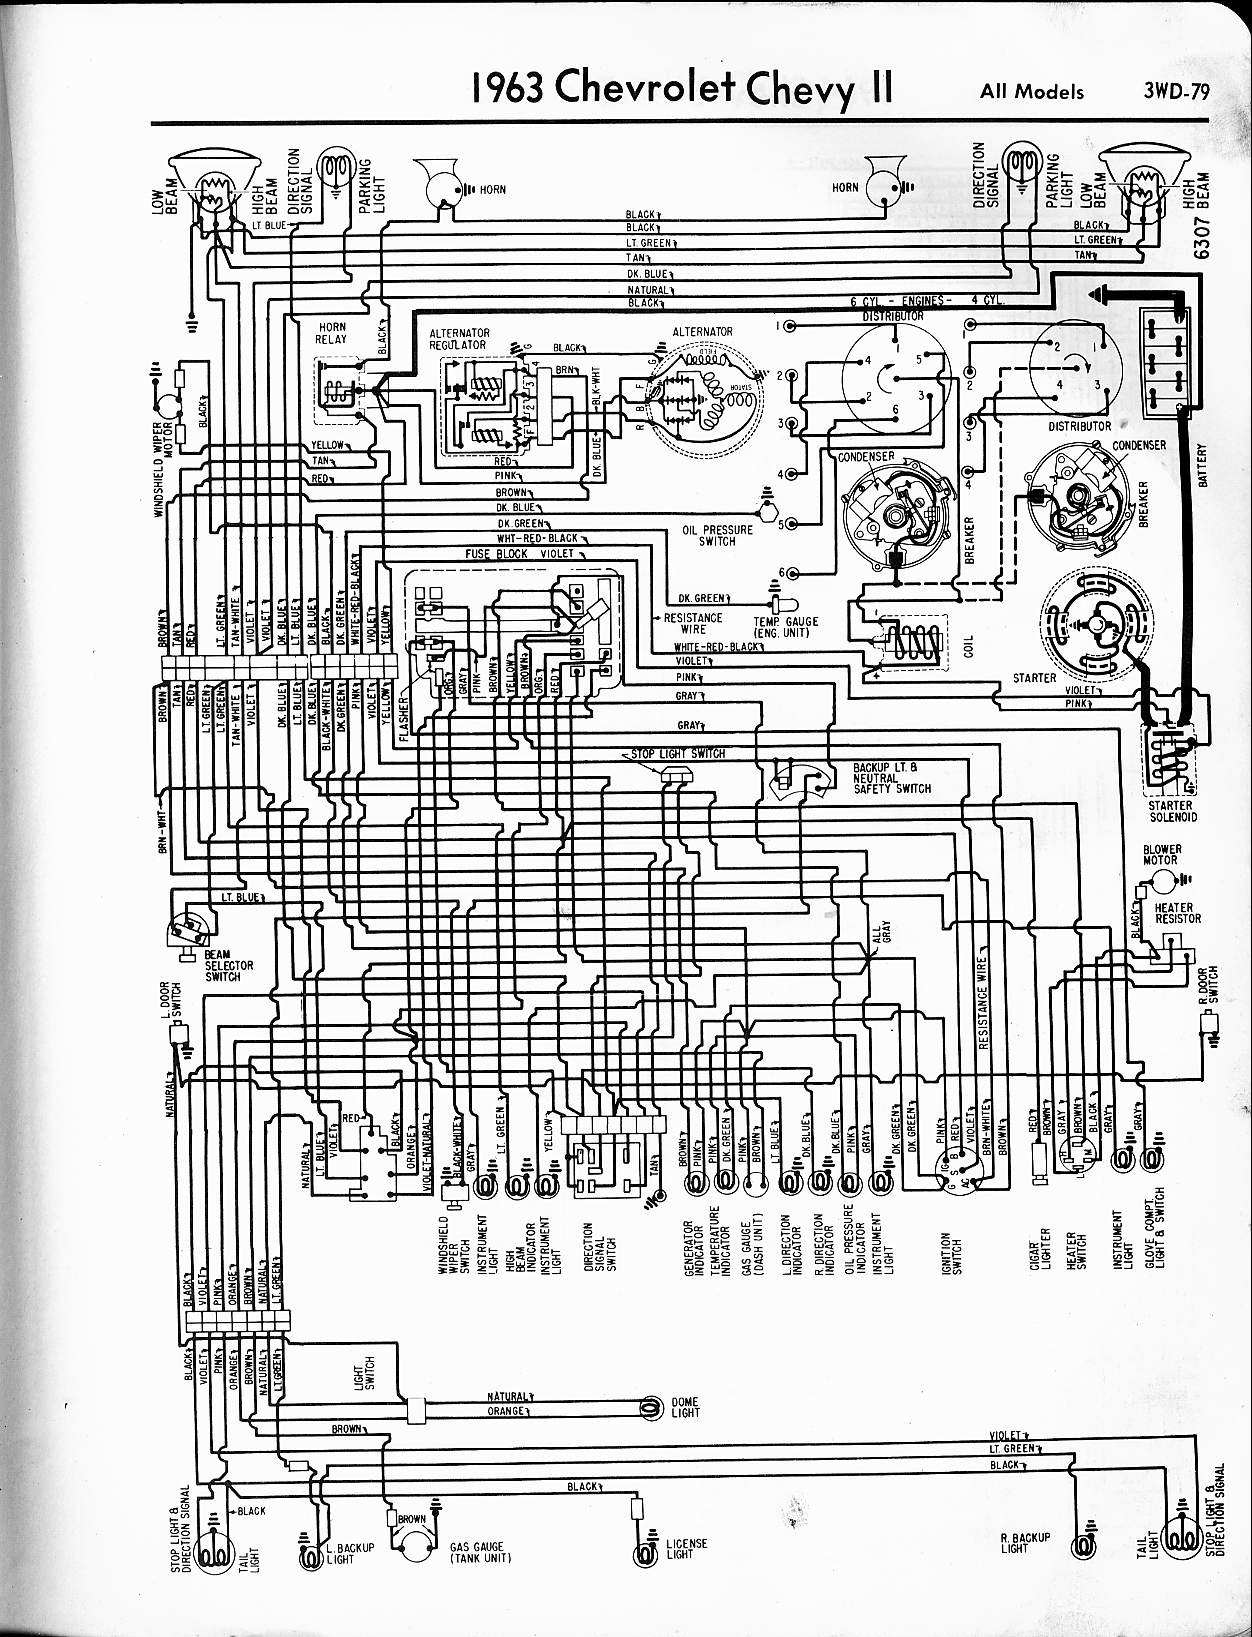 MWireChev63_3WD 079 73 chevy truck wiring diagrams gm painless wiring diagram 73 chevy  at gsmx.co